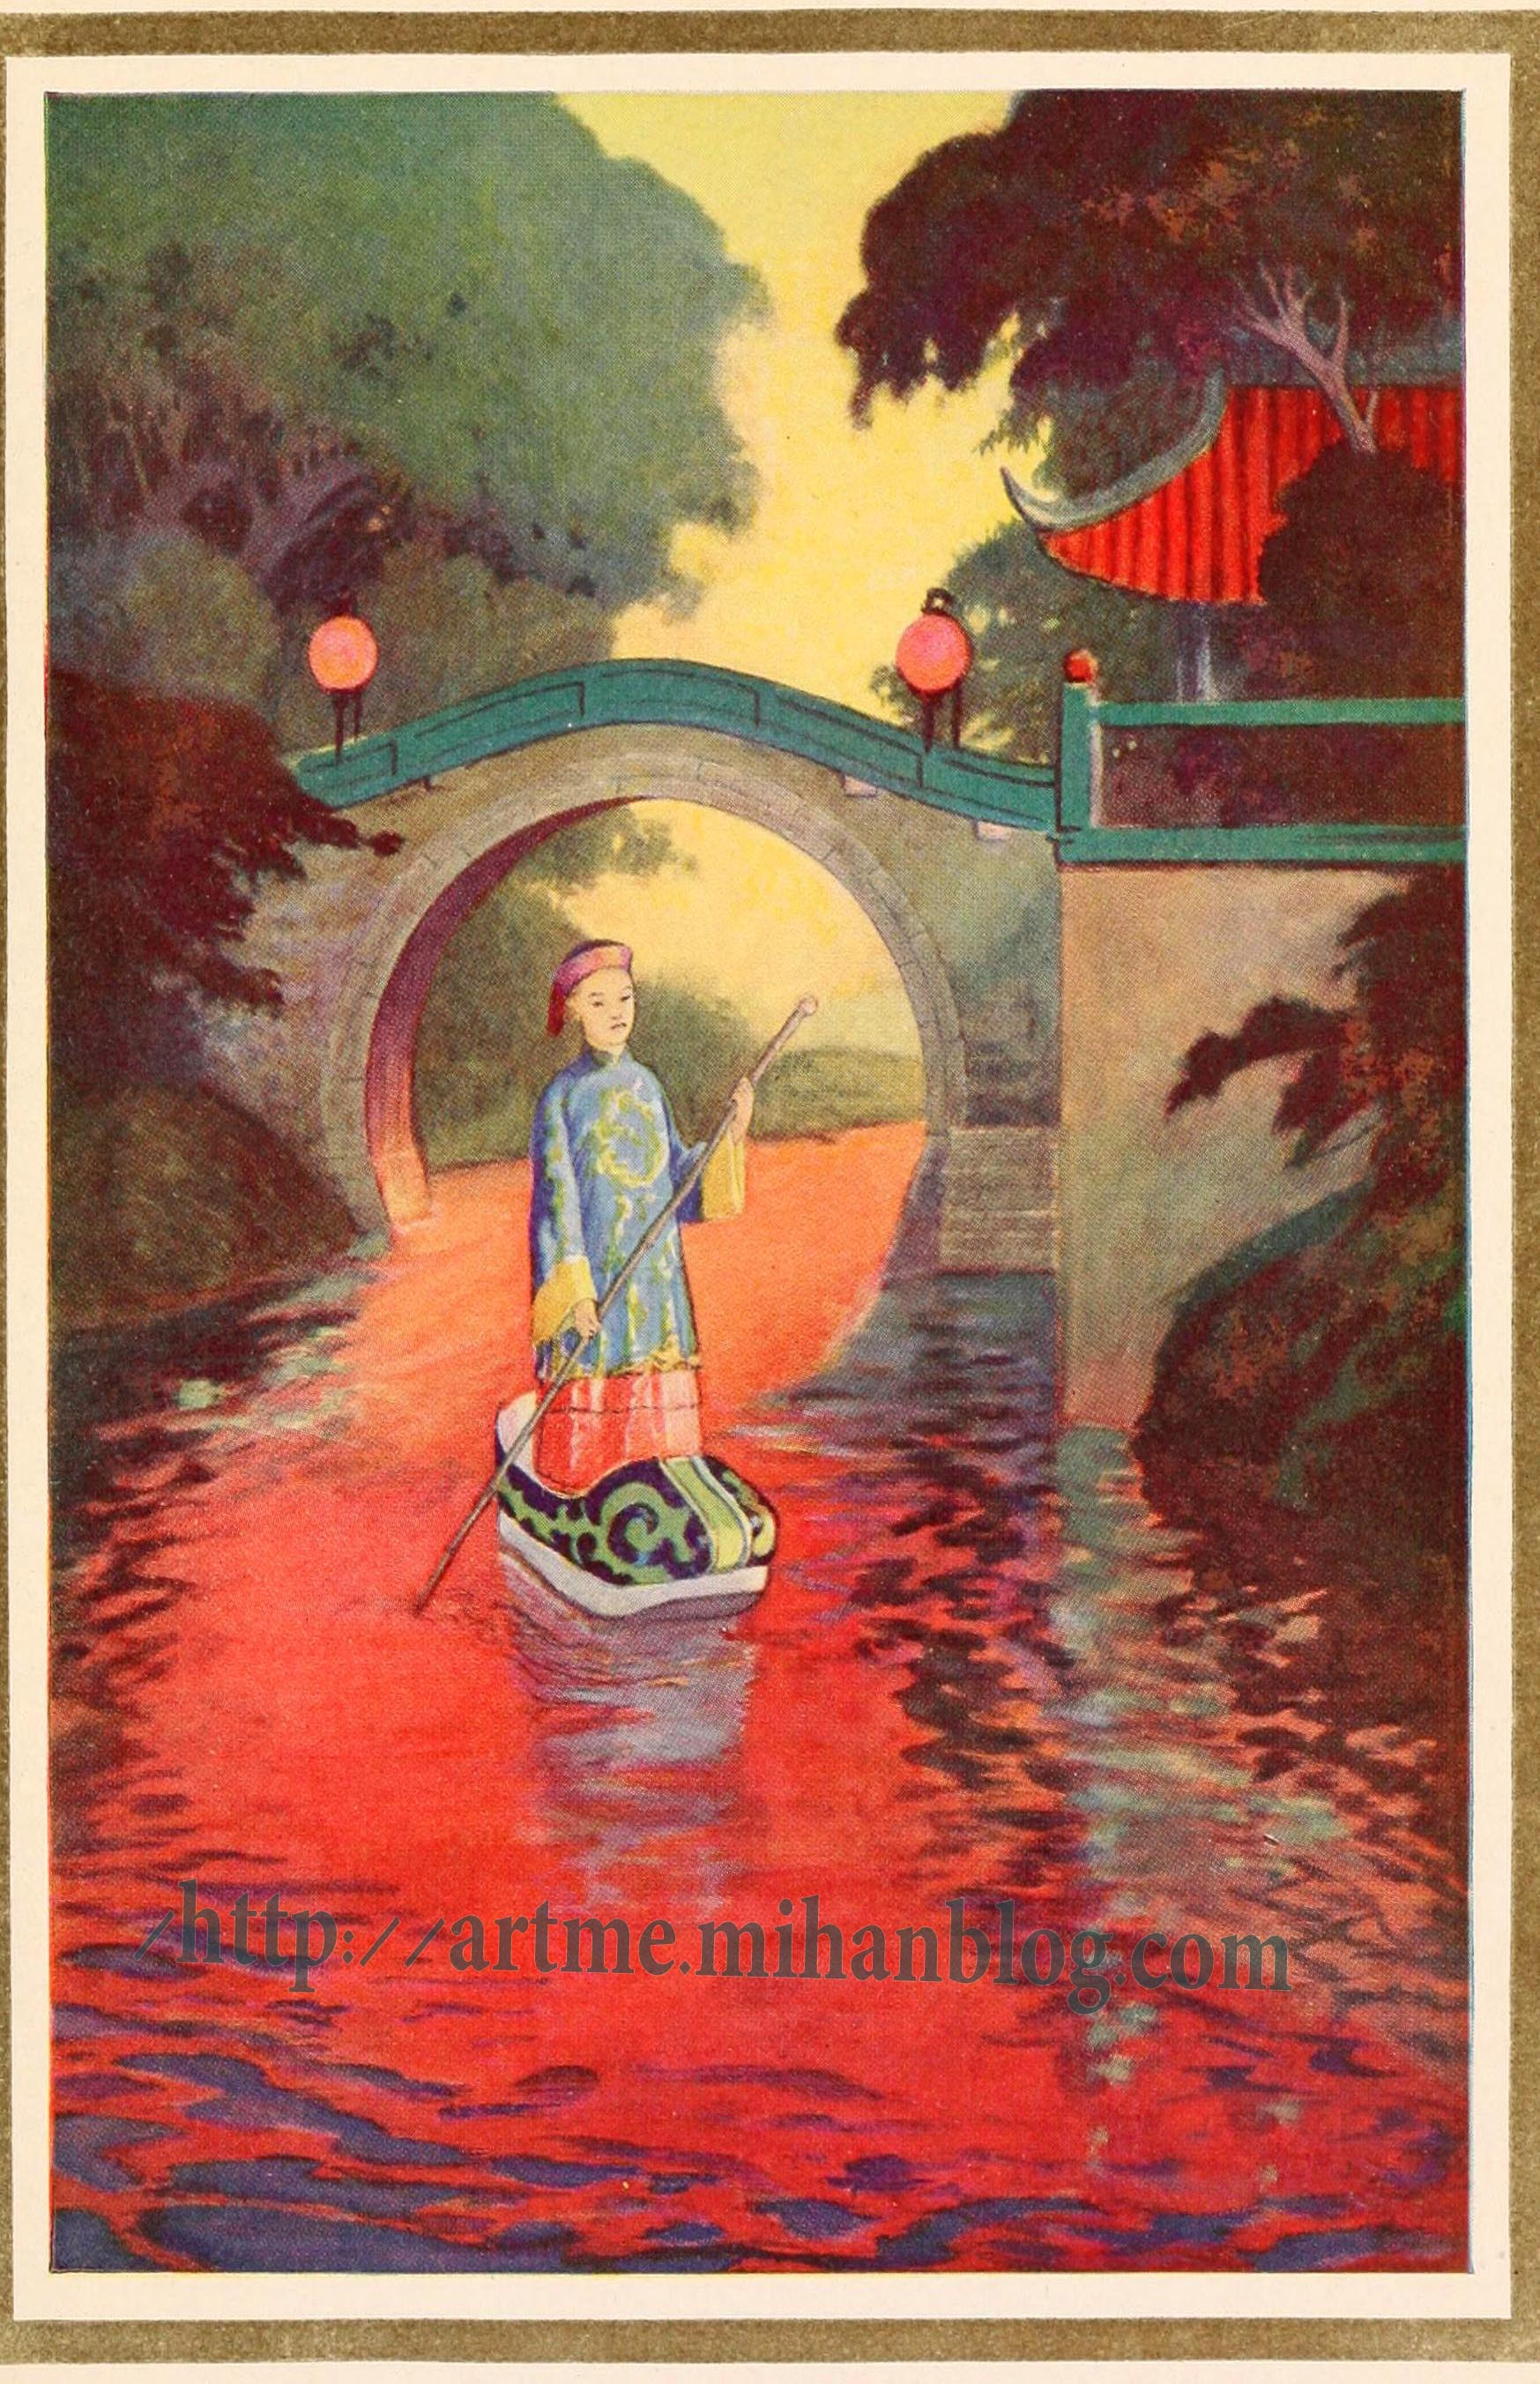 http://www.uplooder.net/img/image/64/fd6c5e7765a8b222ba05f9d4c8e654c4/Juvenile-Book-illustration-Fairy-Tale-Asian-Chinese-Fairy-boy-on-river.jpg